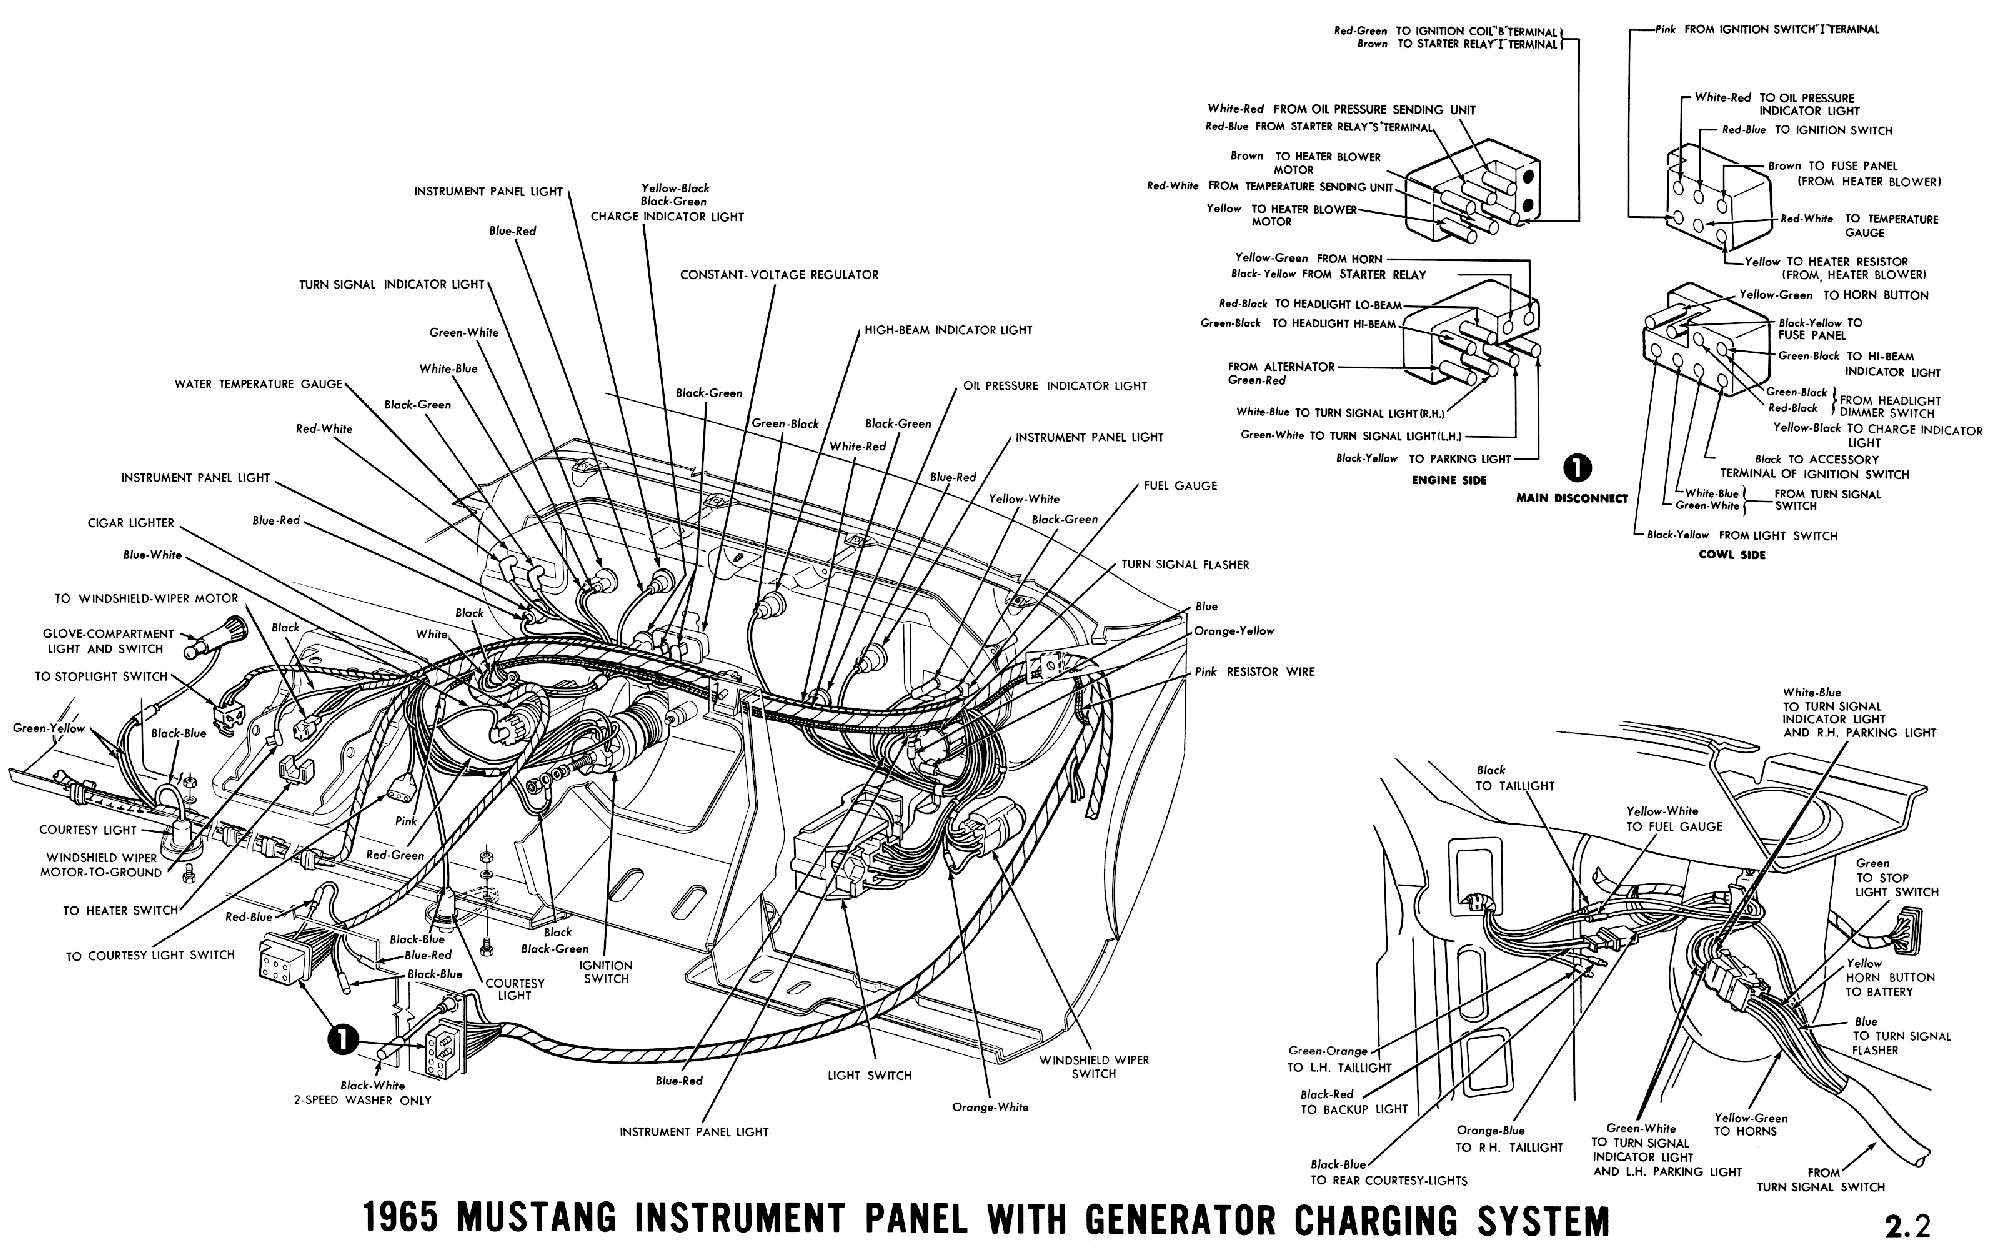 1965 Mustang Wiring Diagrams Average Joe Restoration Two Schematic Diagram 1965b